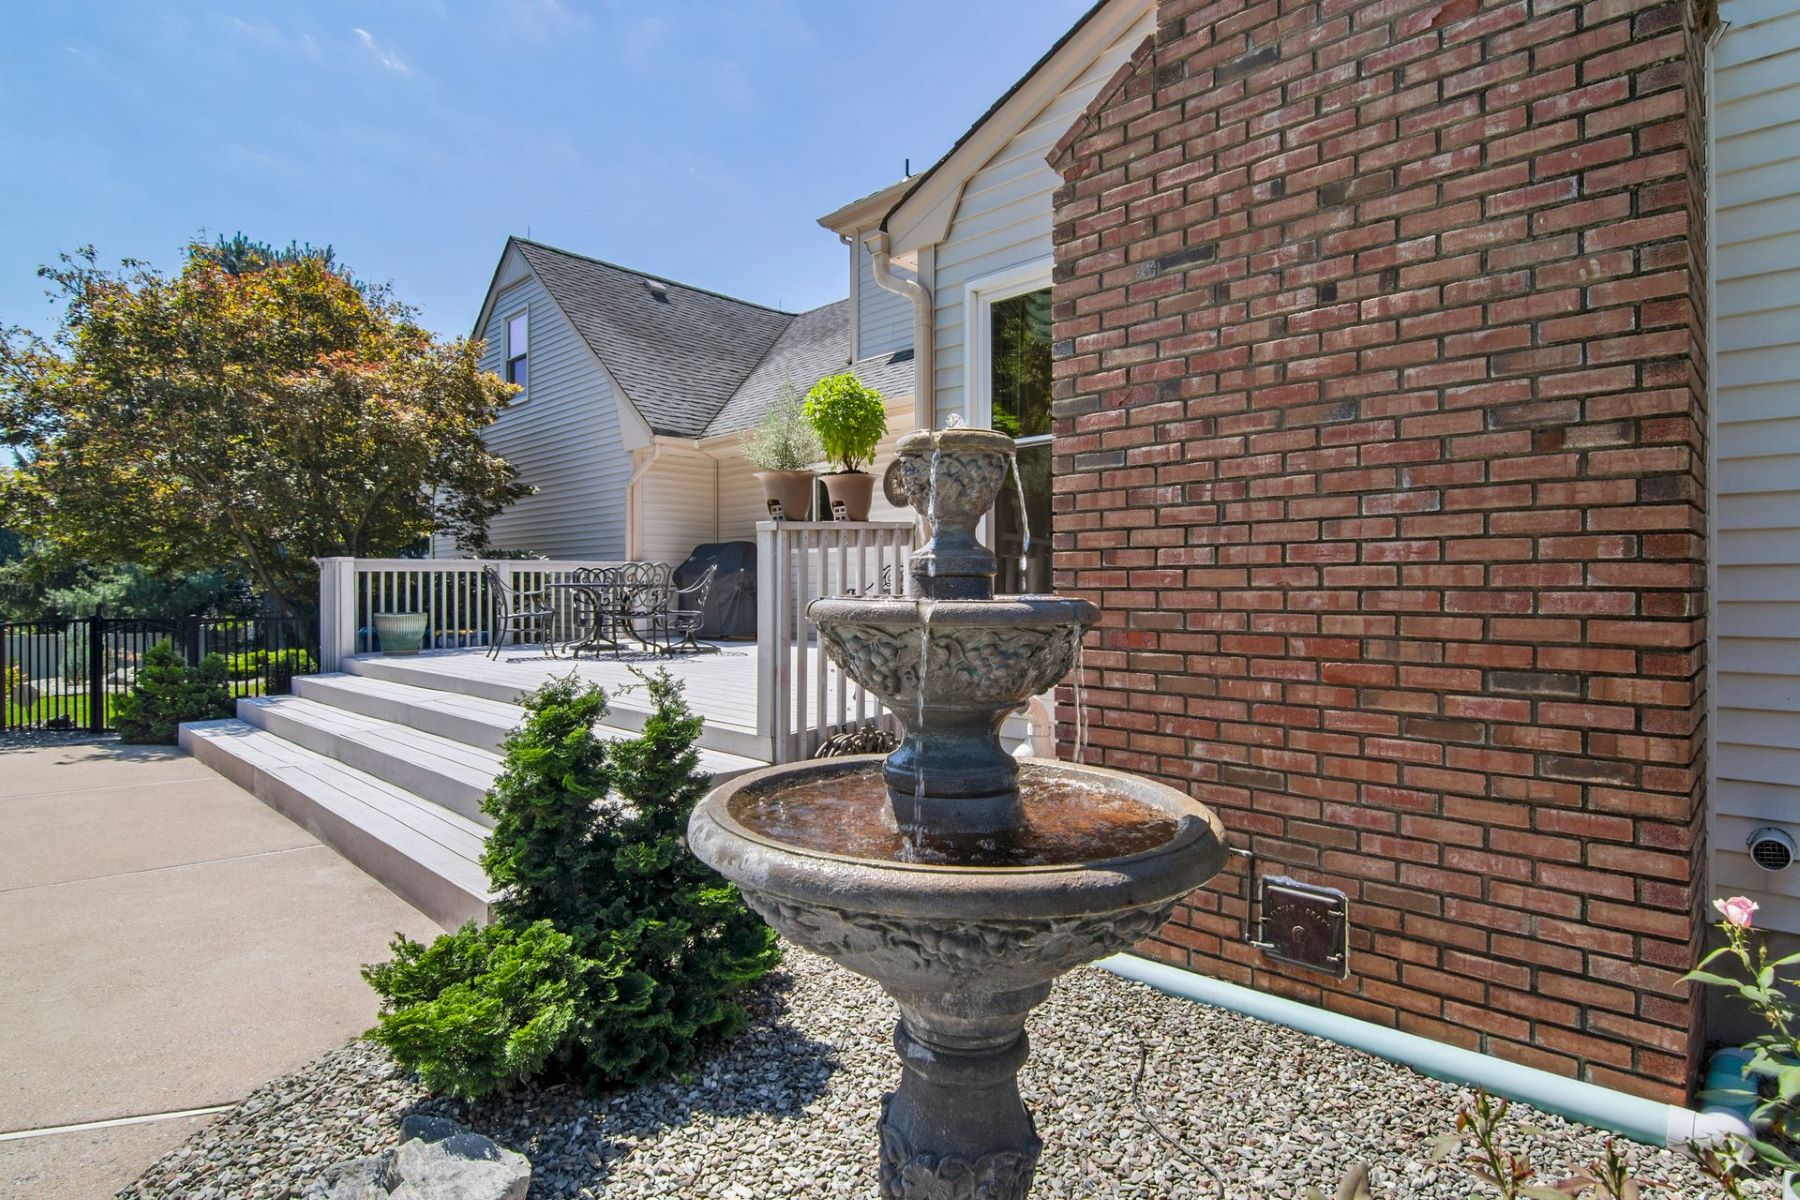 Additional photo for property listing at Ready For Its Next Owner 51 Wilshire Drive, Belle Mead, New Jersey 08502 United States